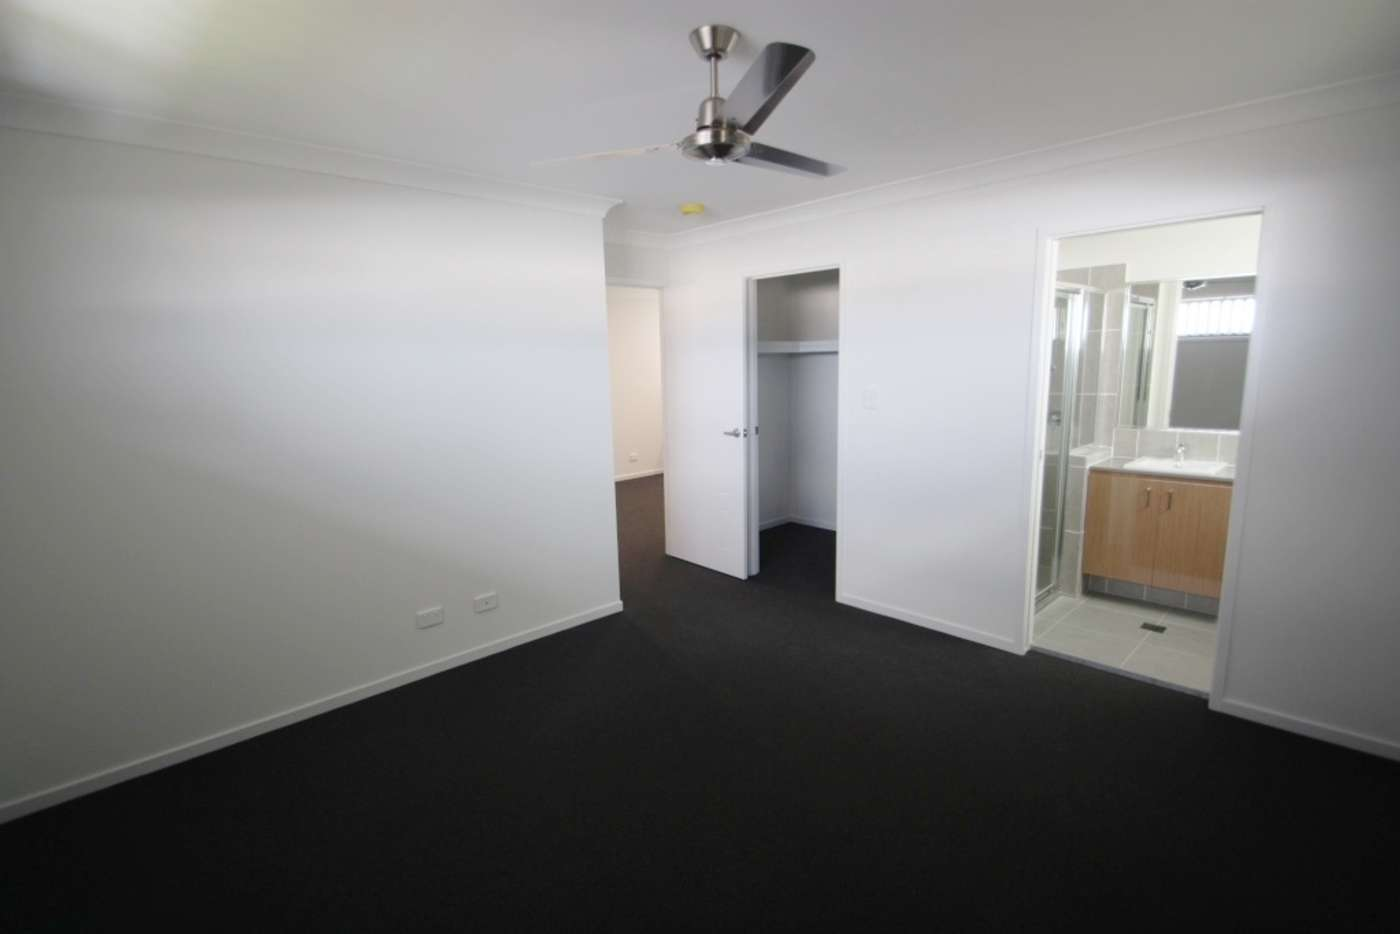 Seventh view of Homely house listing, 27 Marshall Circuit, Coomera QLD 4209